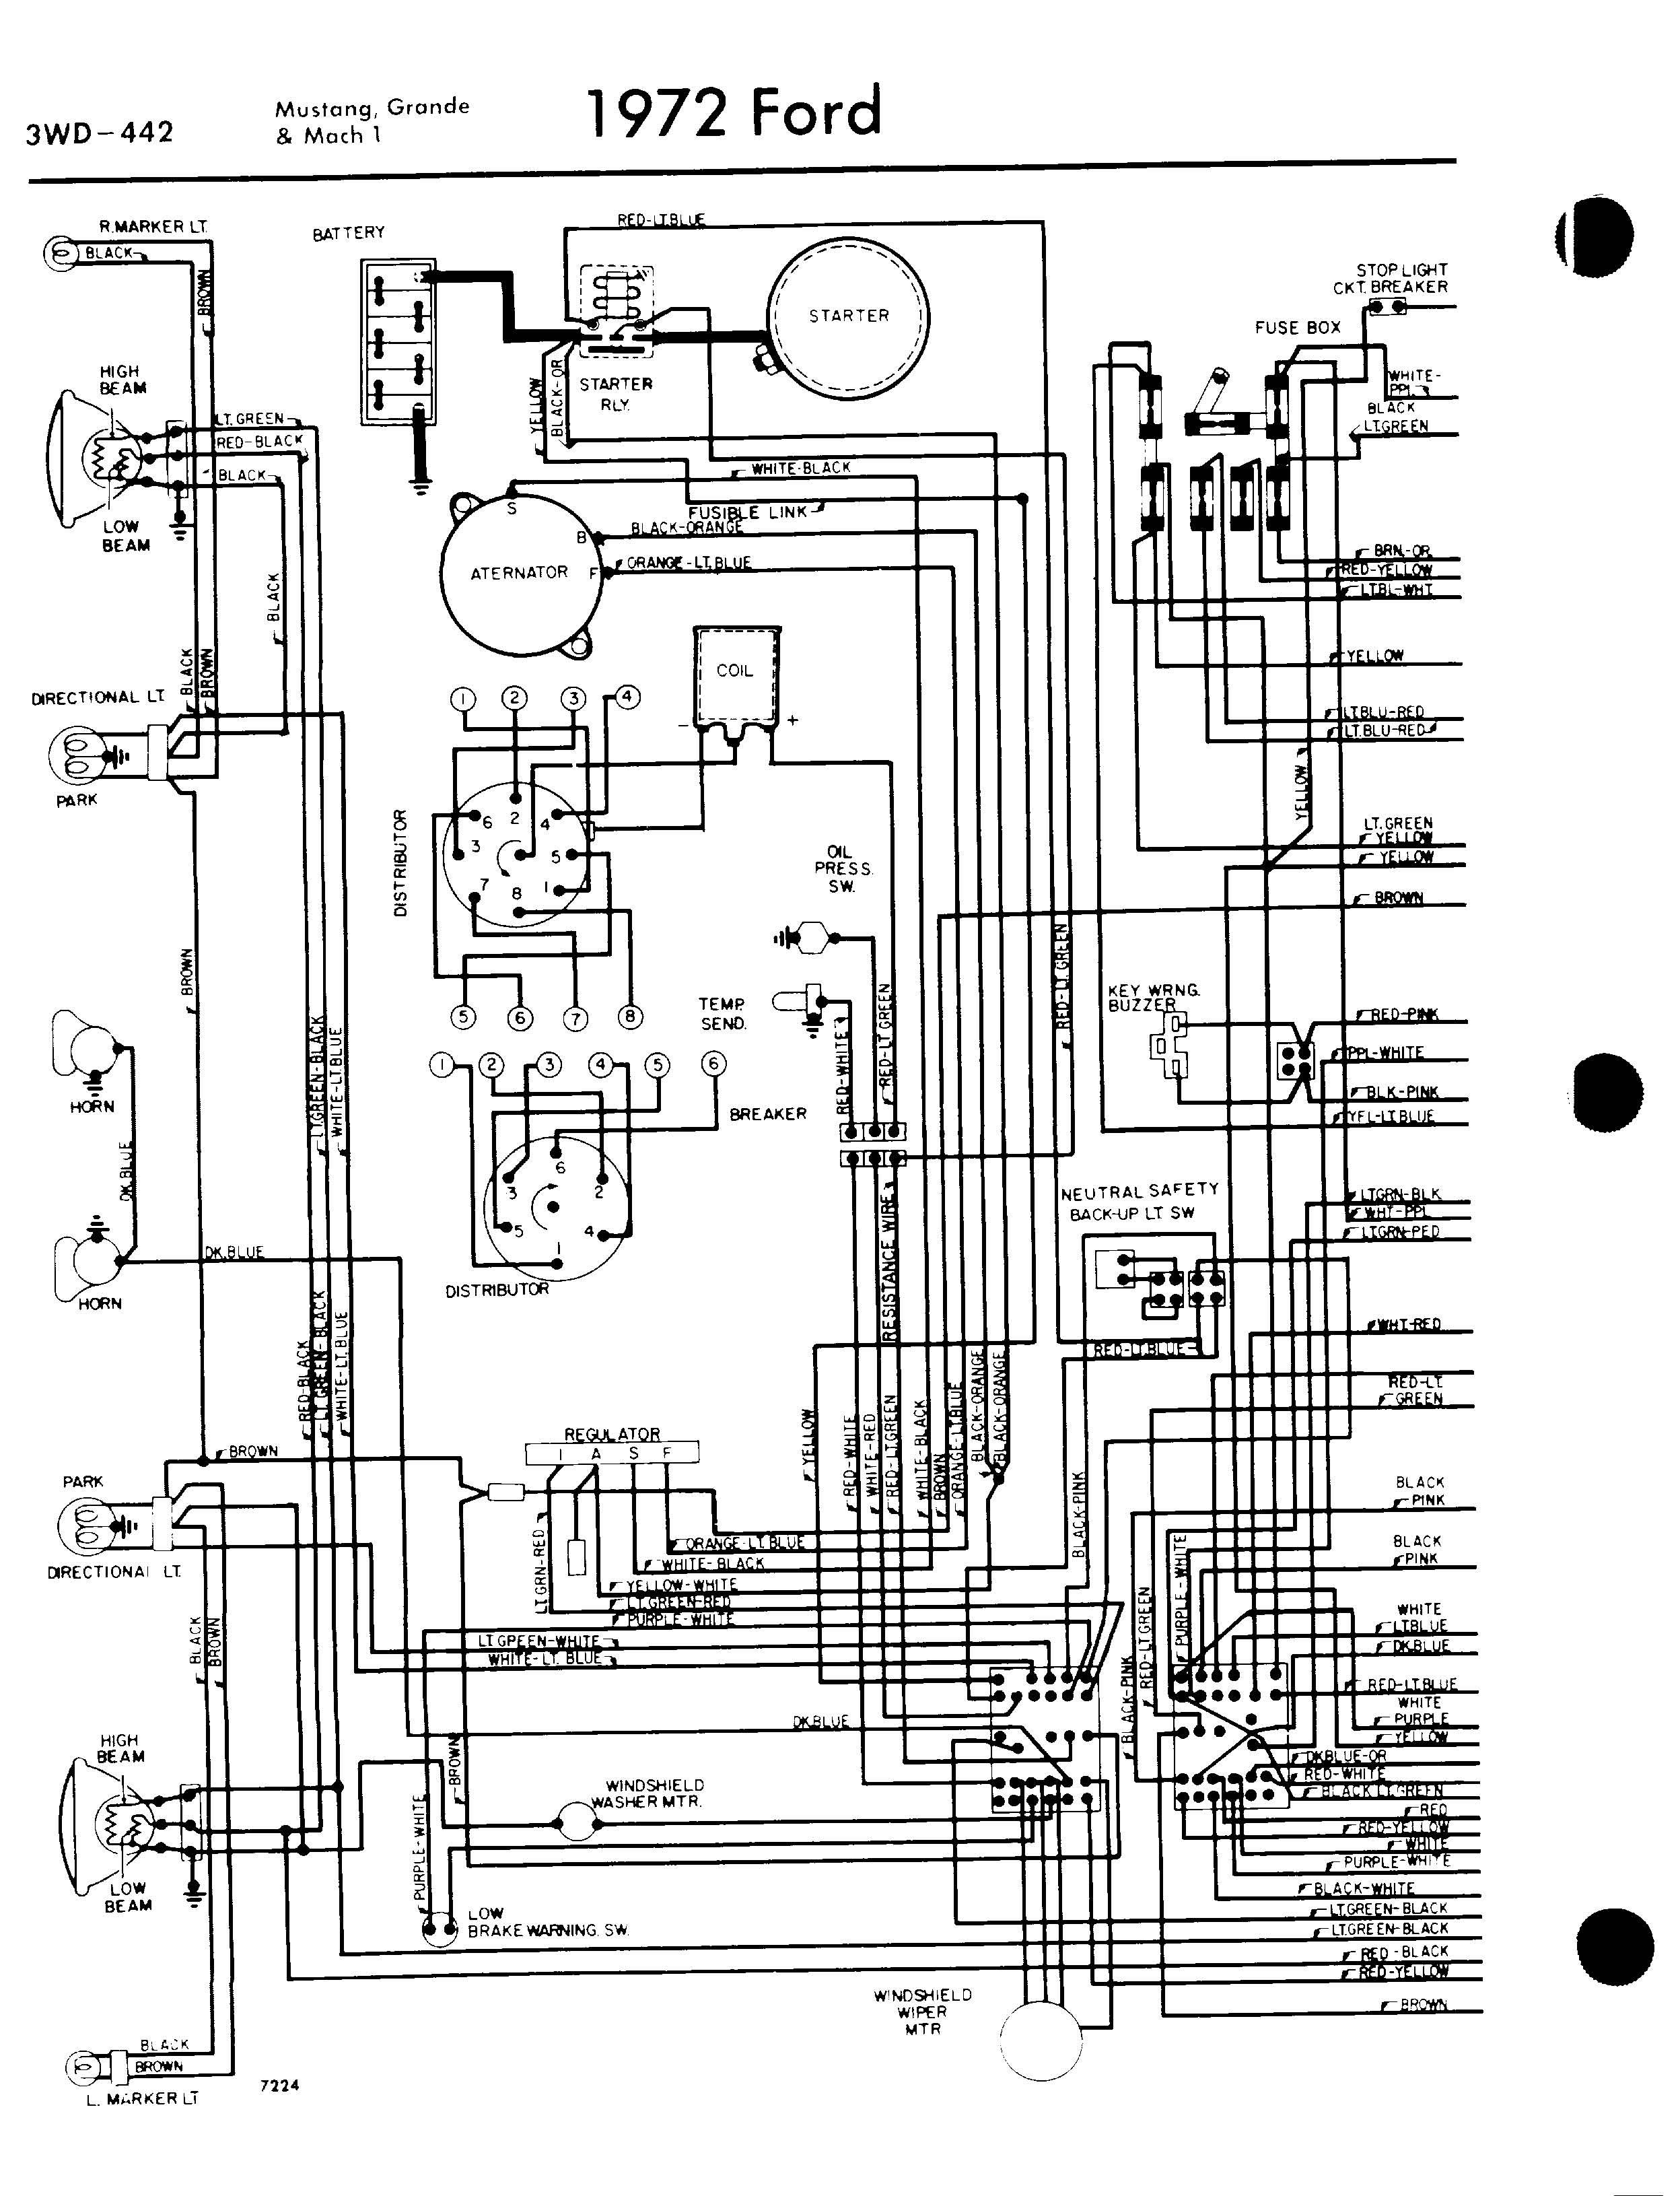 71af7a58e095e6a7716b32f1b23e8bd2 72 mach1 alternator wire harness diagram yahoo search results Ford Alternator Wiring Diagram at bayanpartner.co